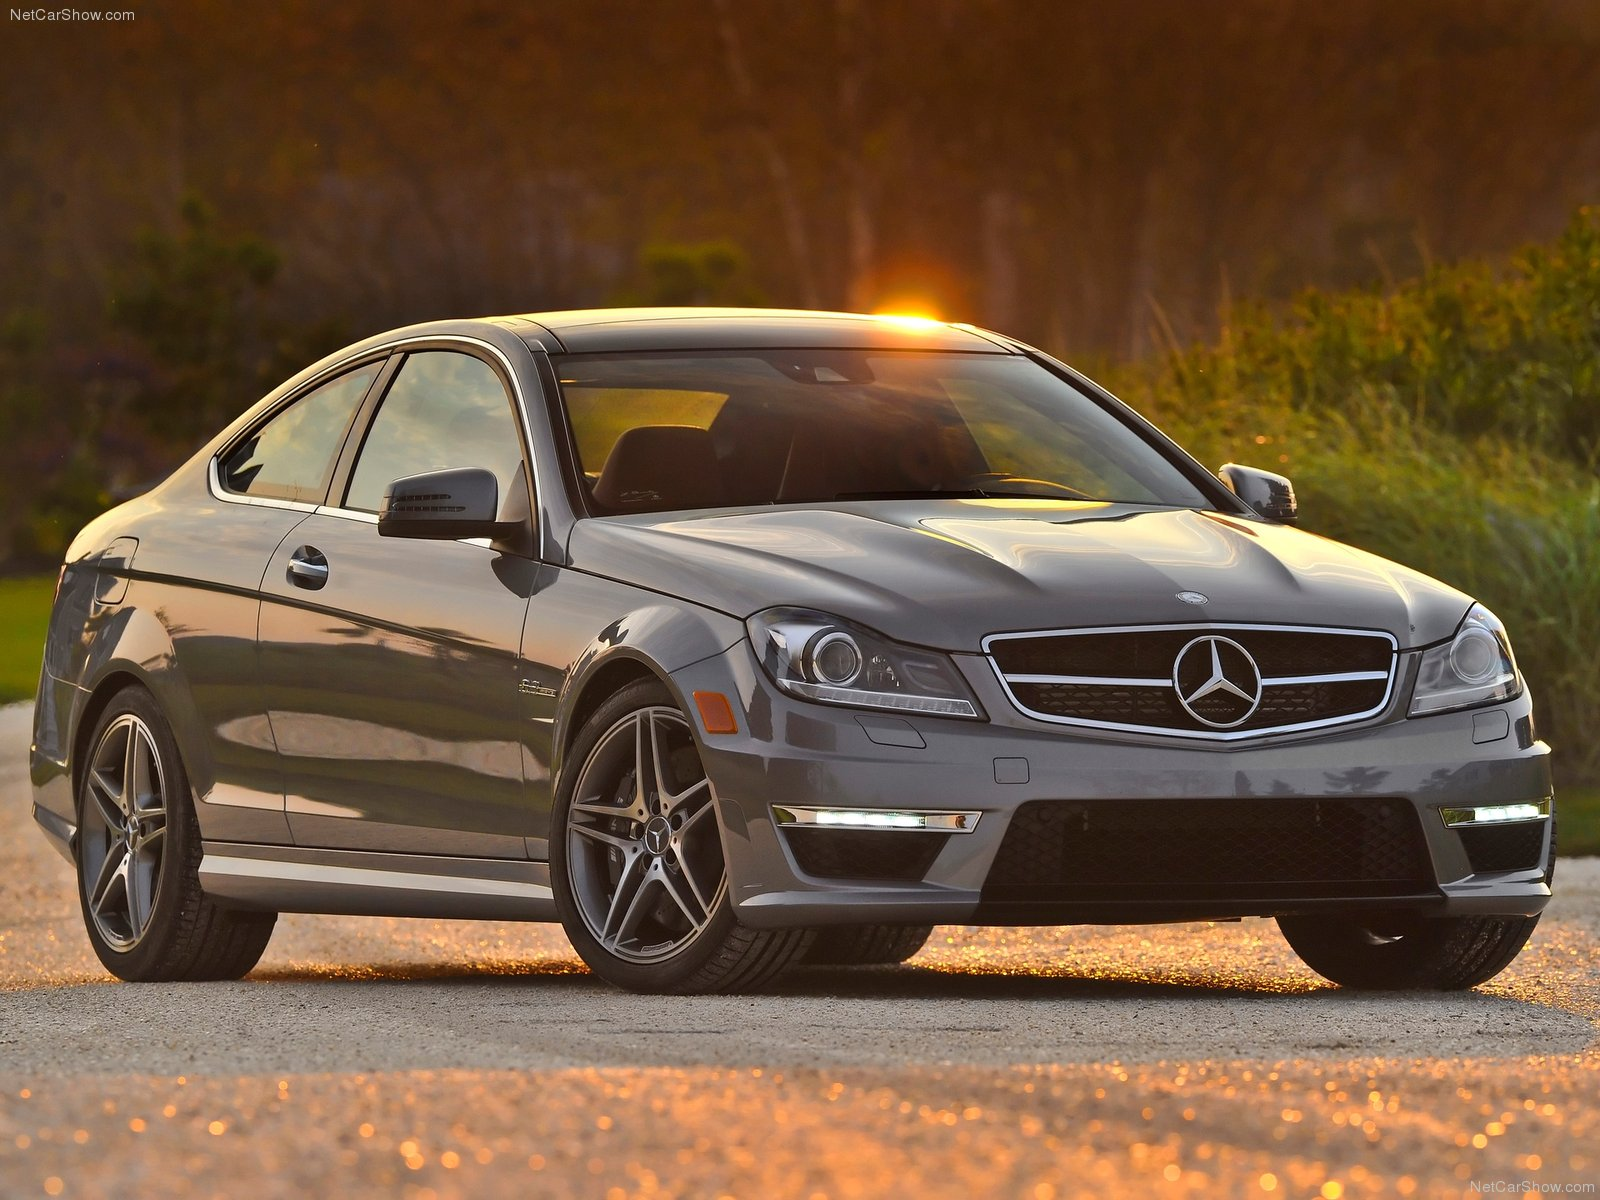 Mercedes-Benz C63 AMG Coupe photo 84573